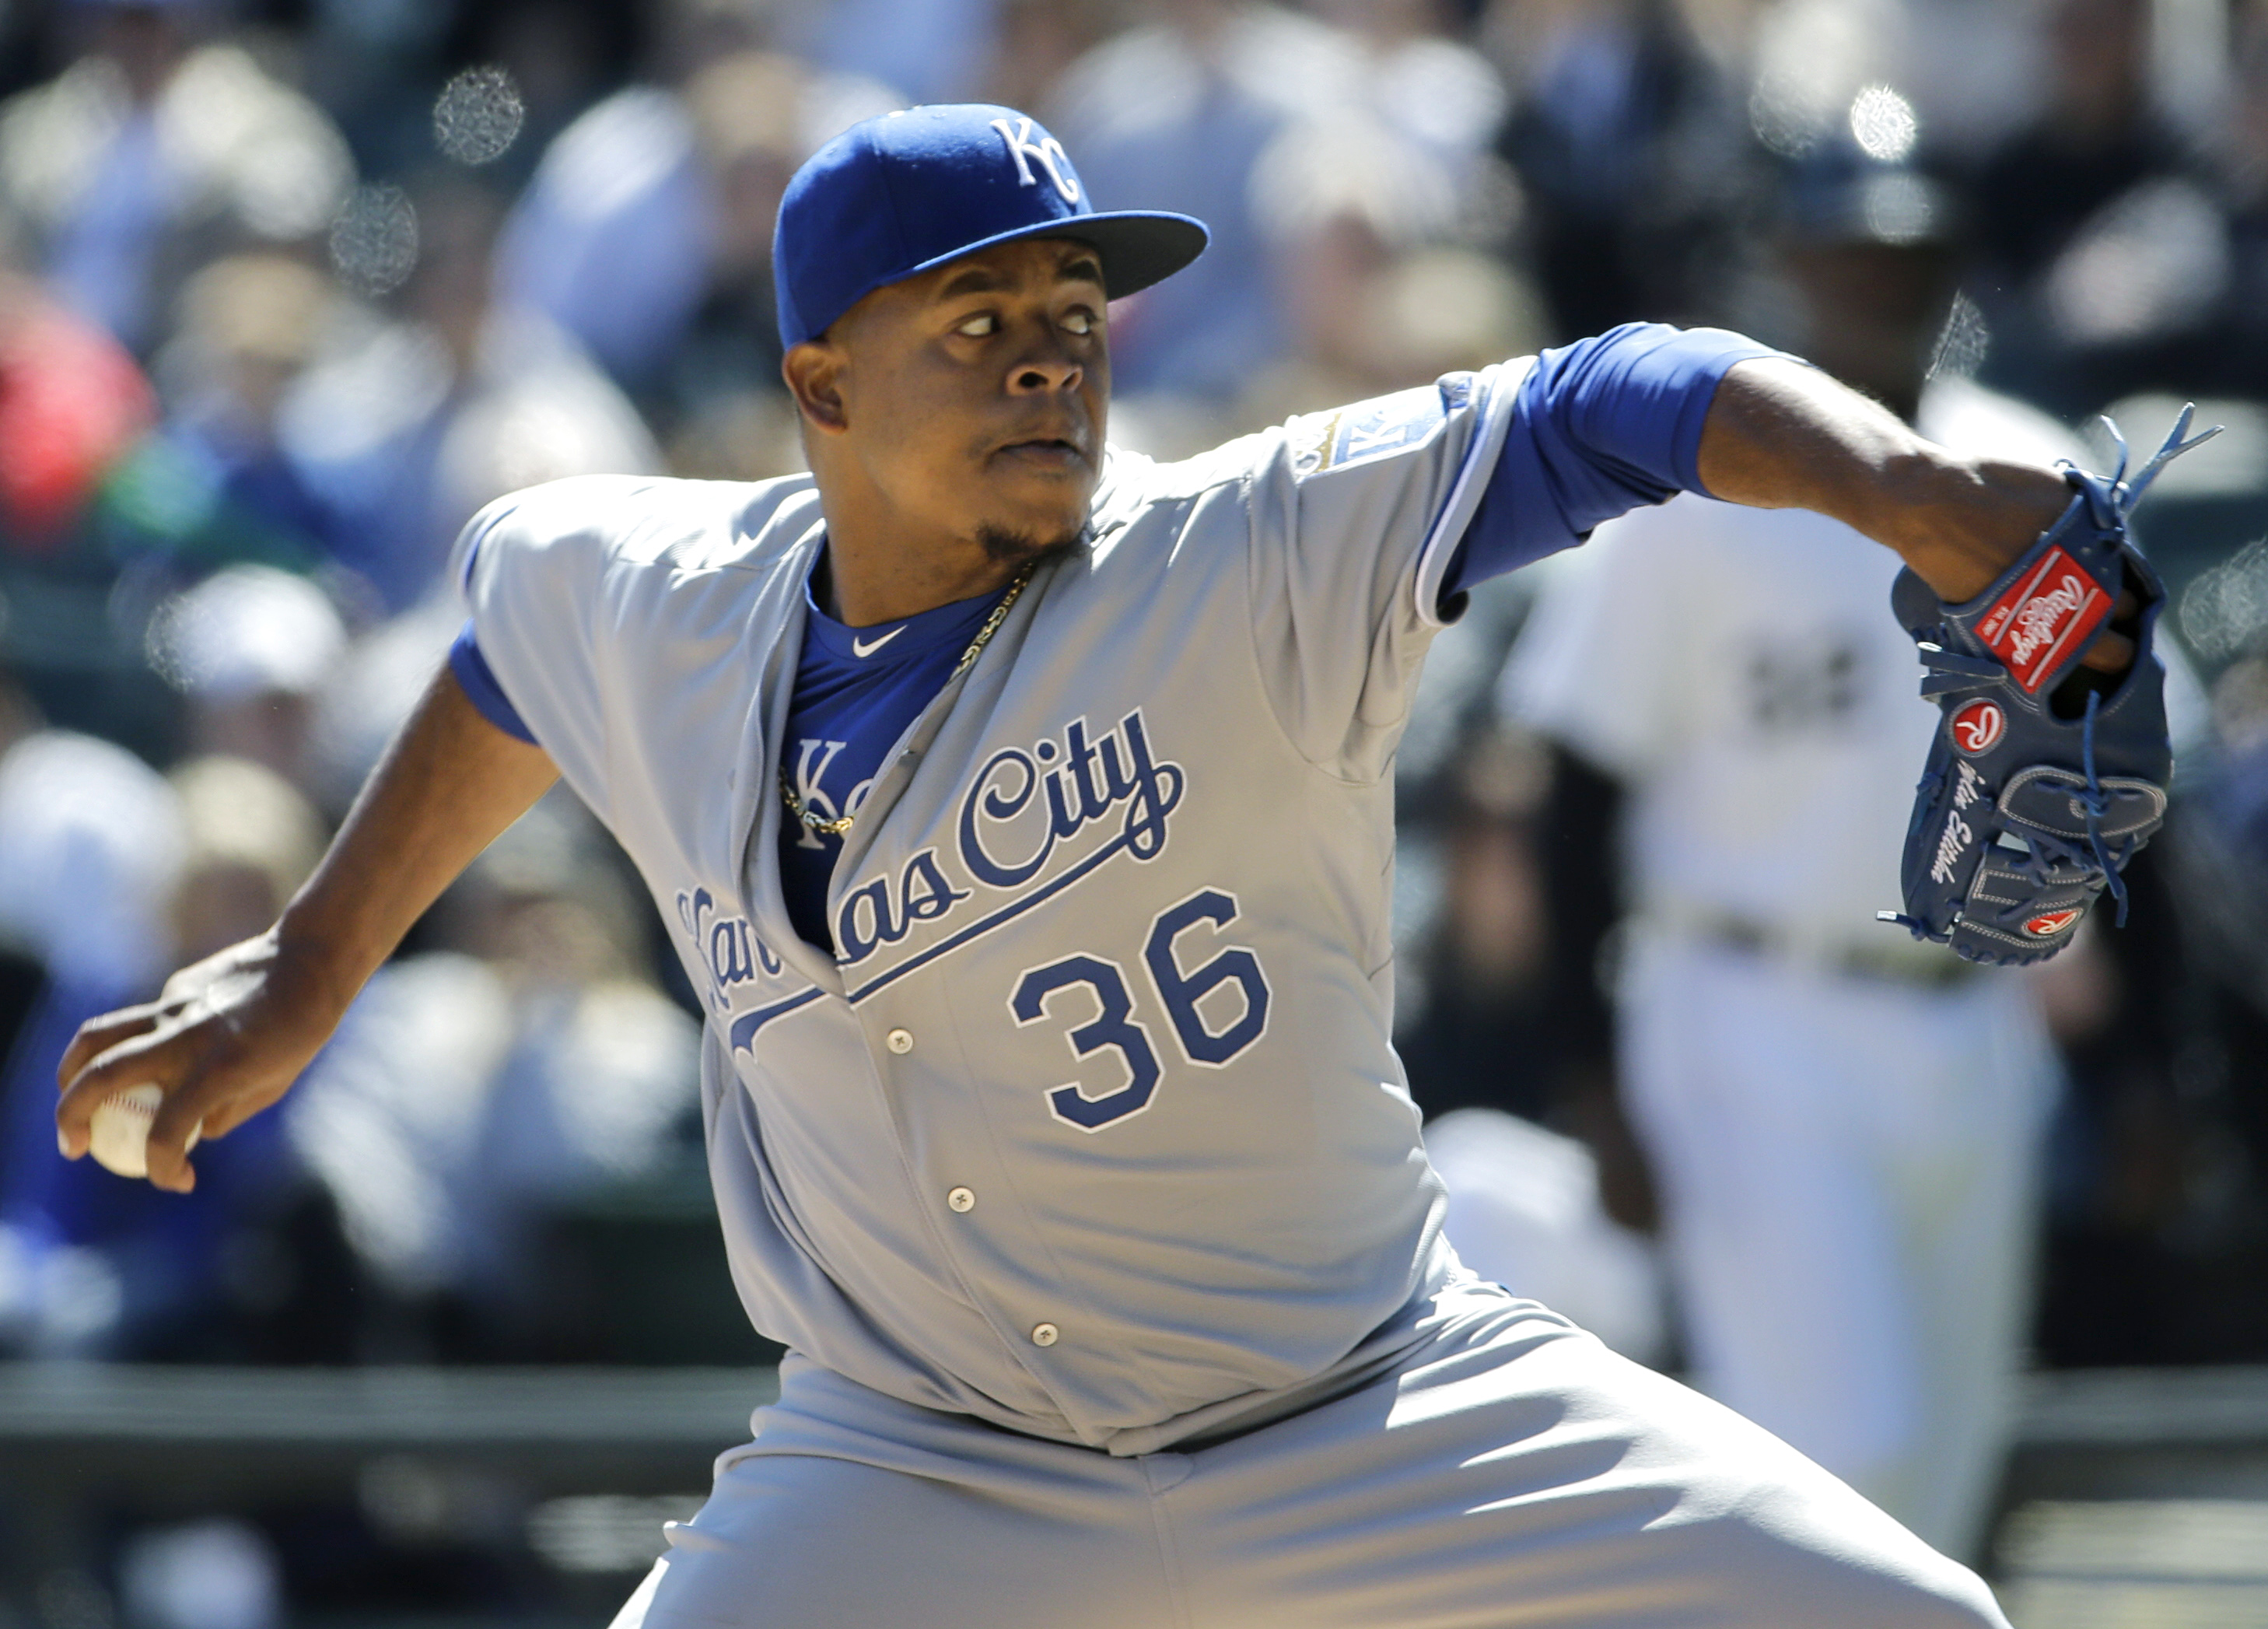 Kansas City Royals starter Edinson Volquez throws a pitch against the Chicago White Sox during the first inning of a baseball game in Chicago on Sunday, April 26, 2015. (AP Photo/Nam Y. Huh)